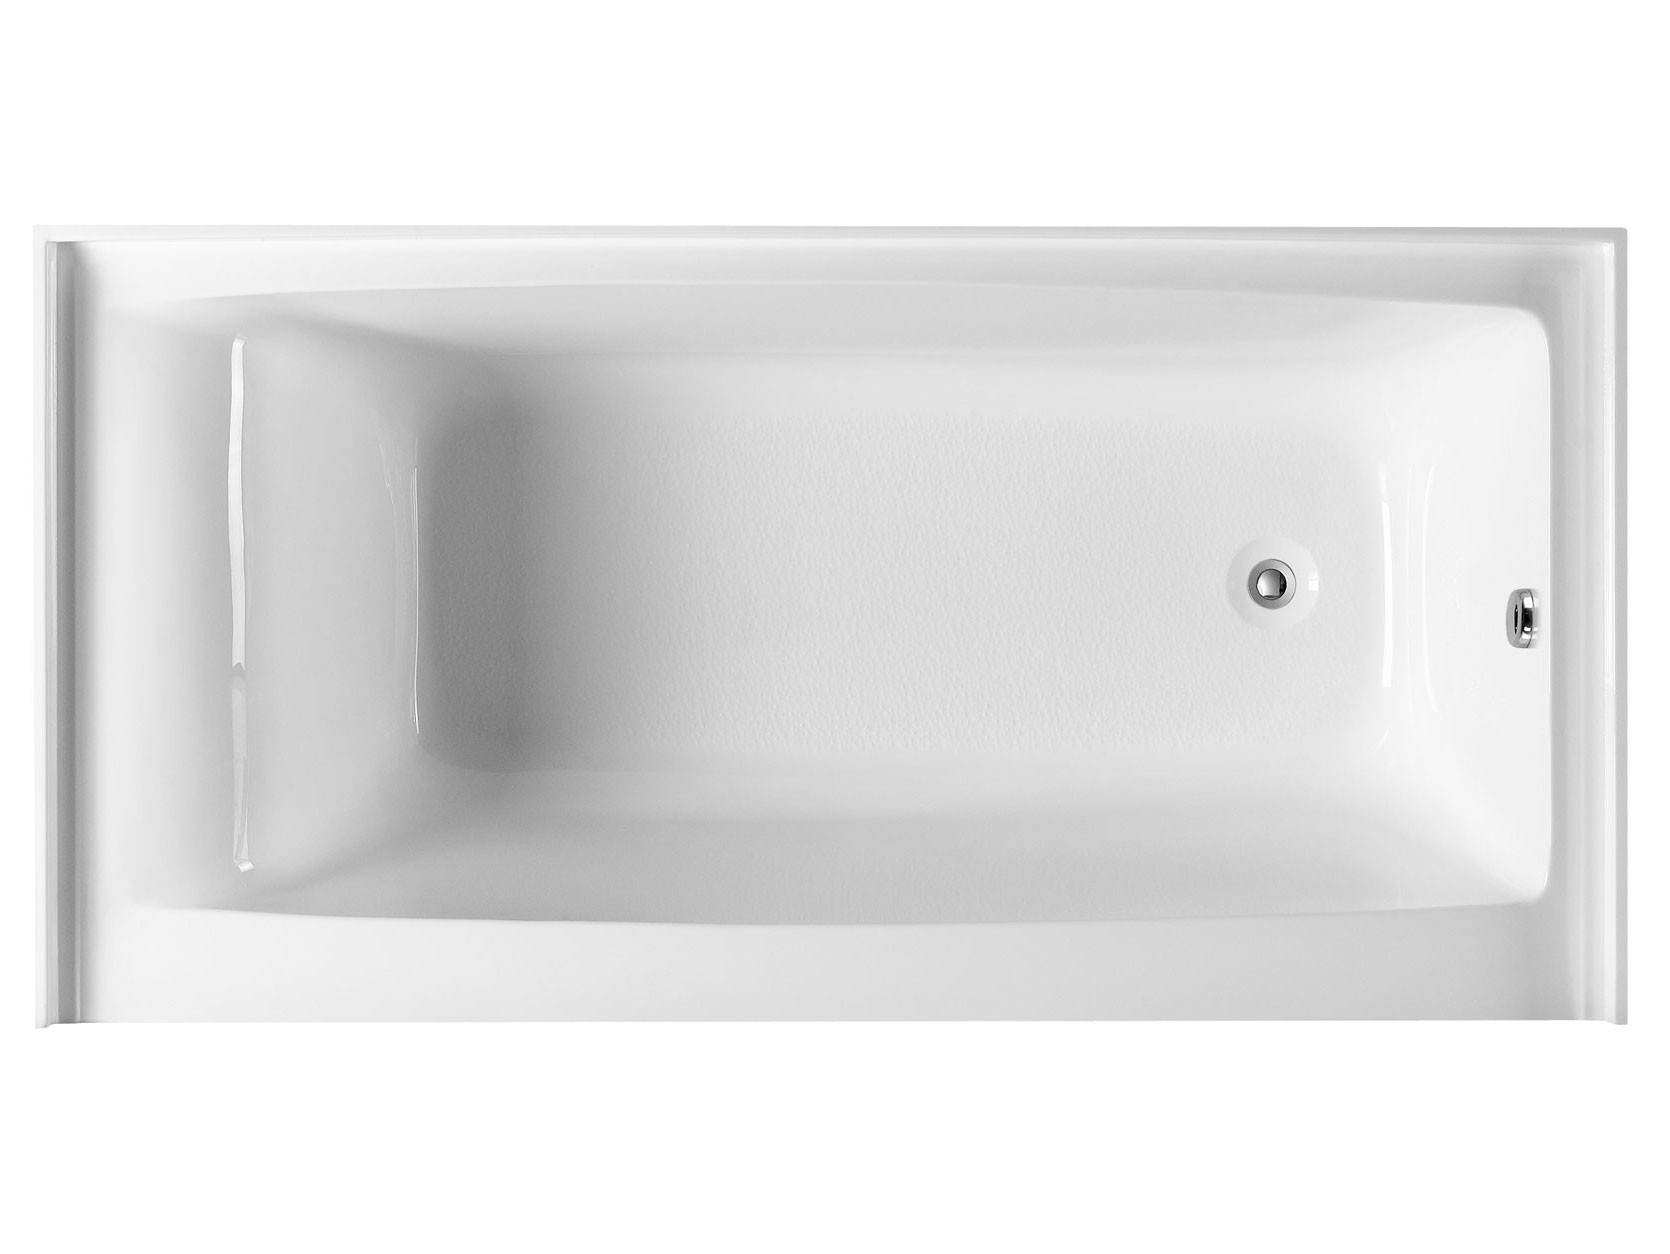 Pacific Collection PBT-DELANO-5932-CR-RT - Top view